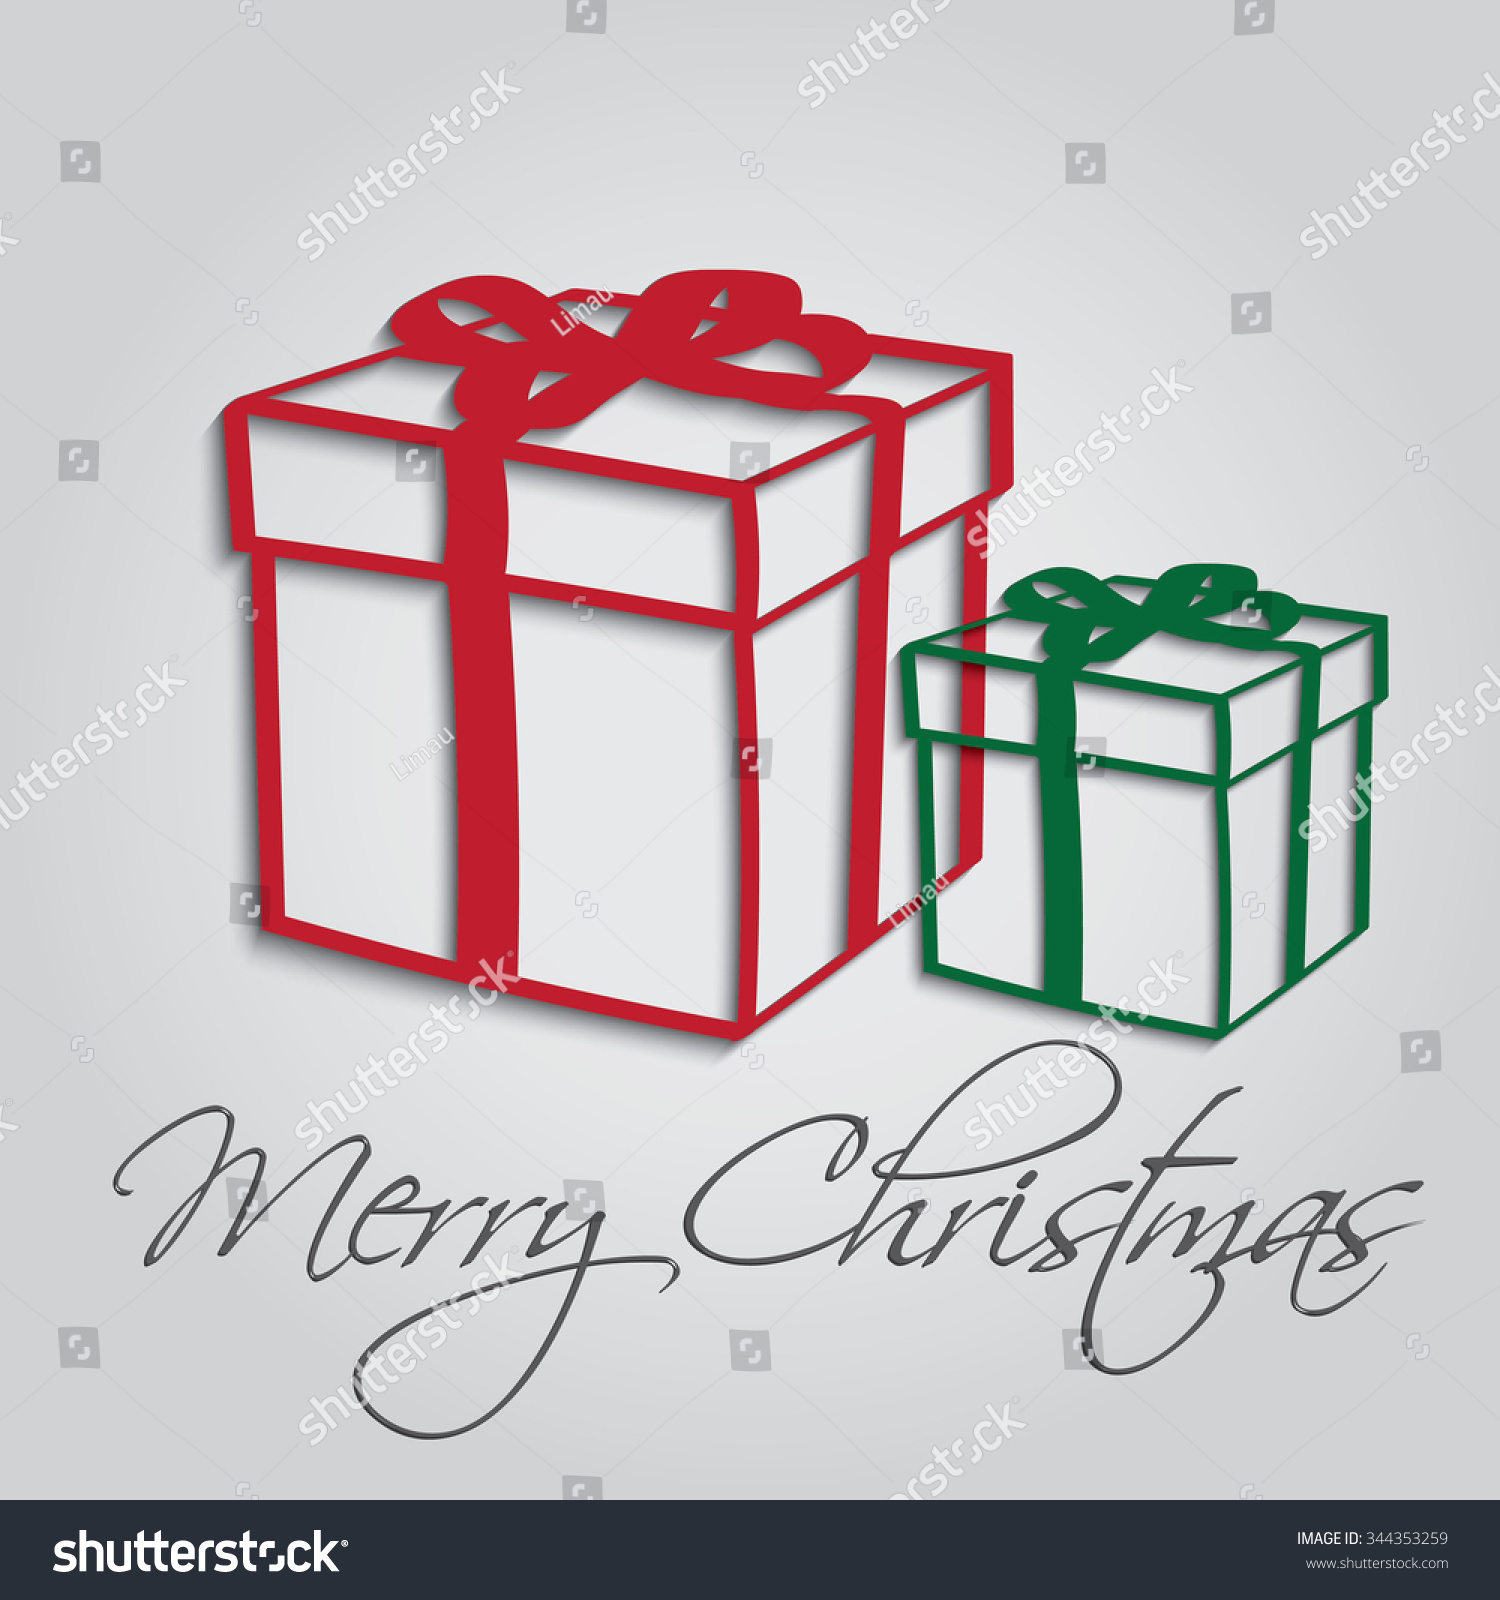 Merry Christmas Greeting Card Clipart Stock Vector 344353259